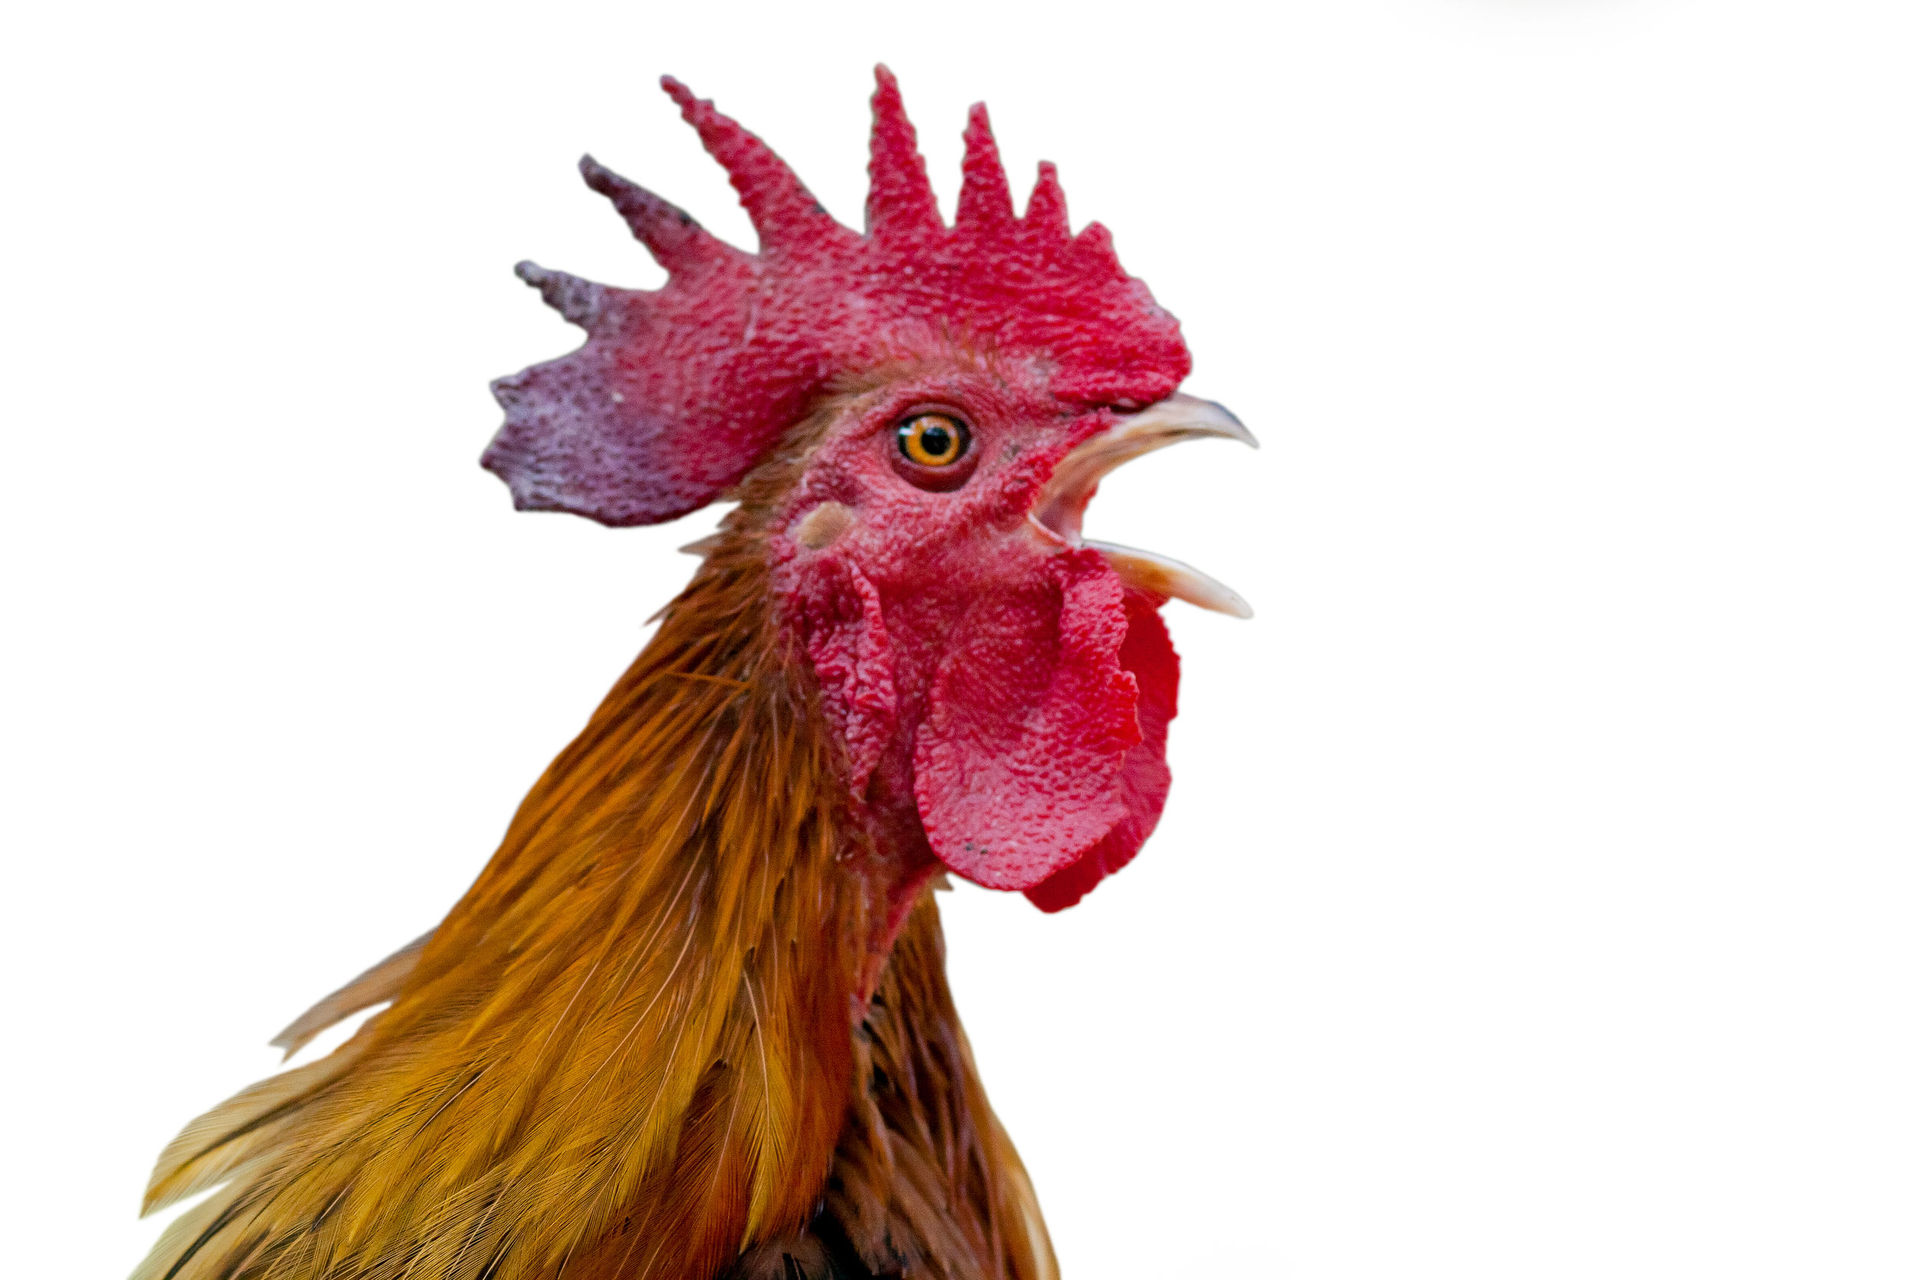 Man killed by 'armed' chicken